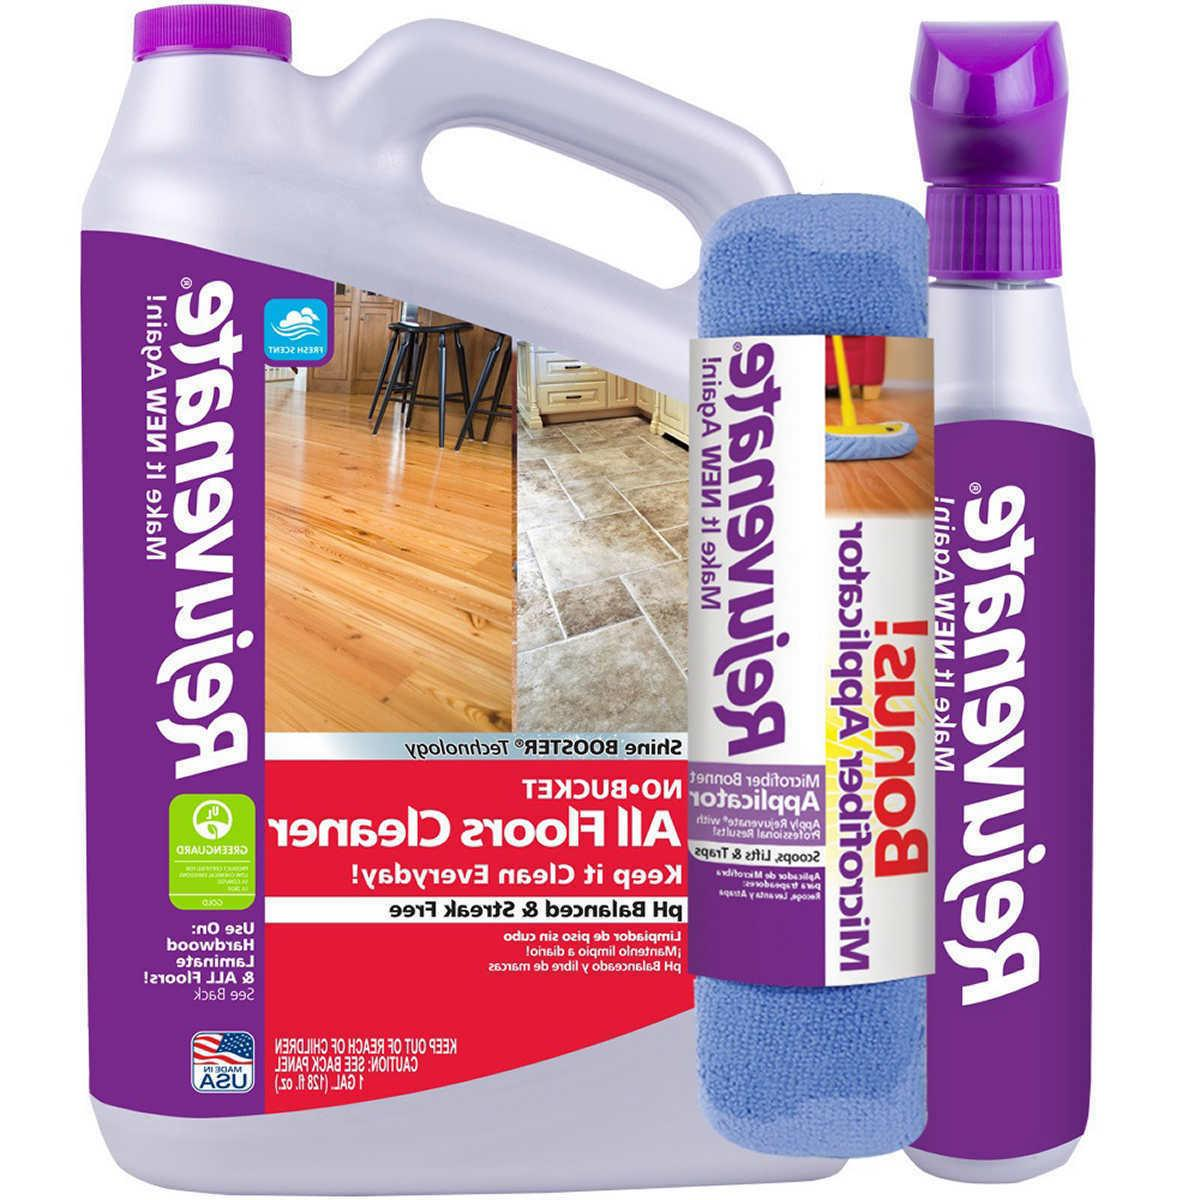 hardwood floor cleaner concentrate 128 oz refill